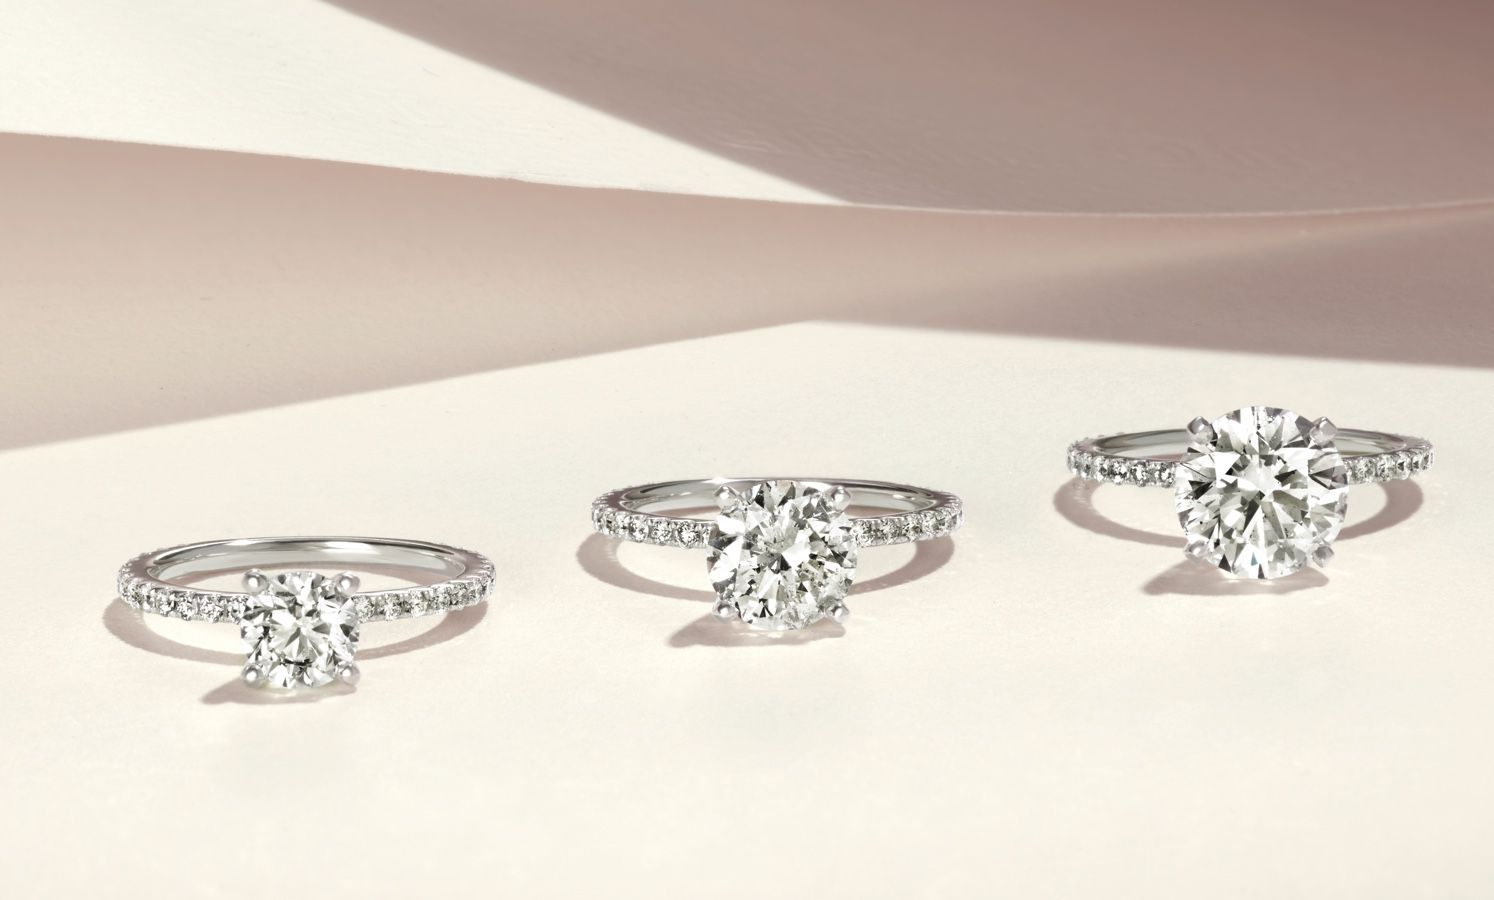 A collection of diamond engagement rings with different center stone sizes